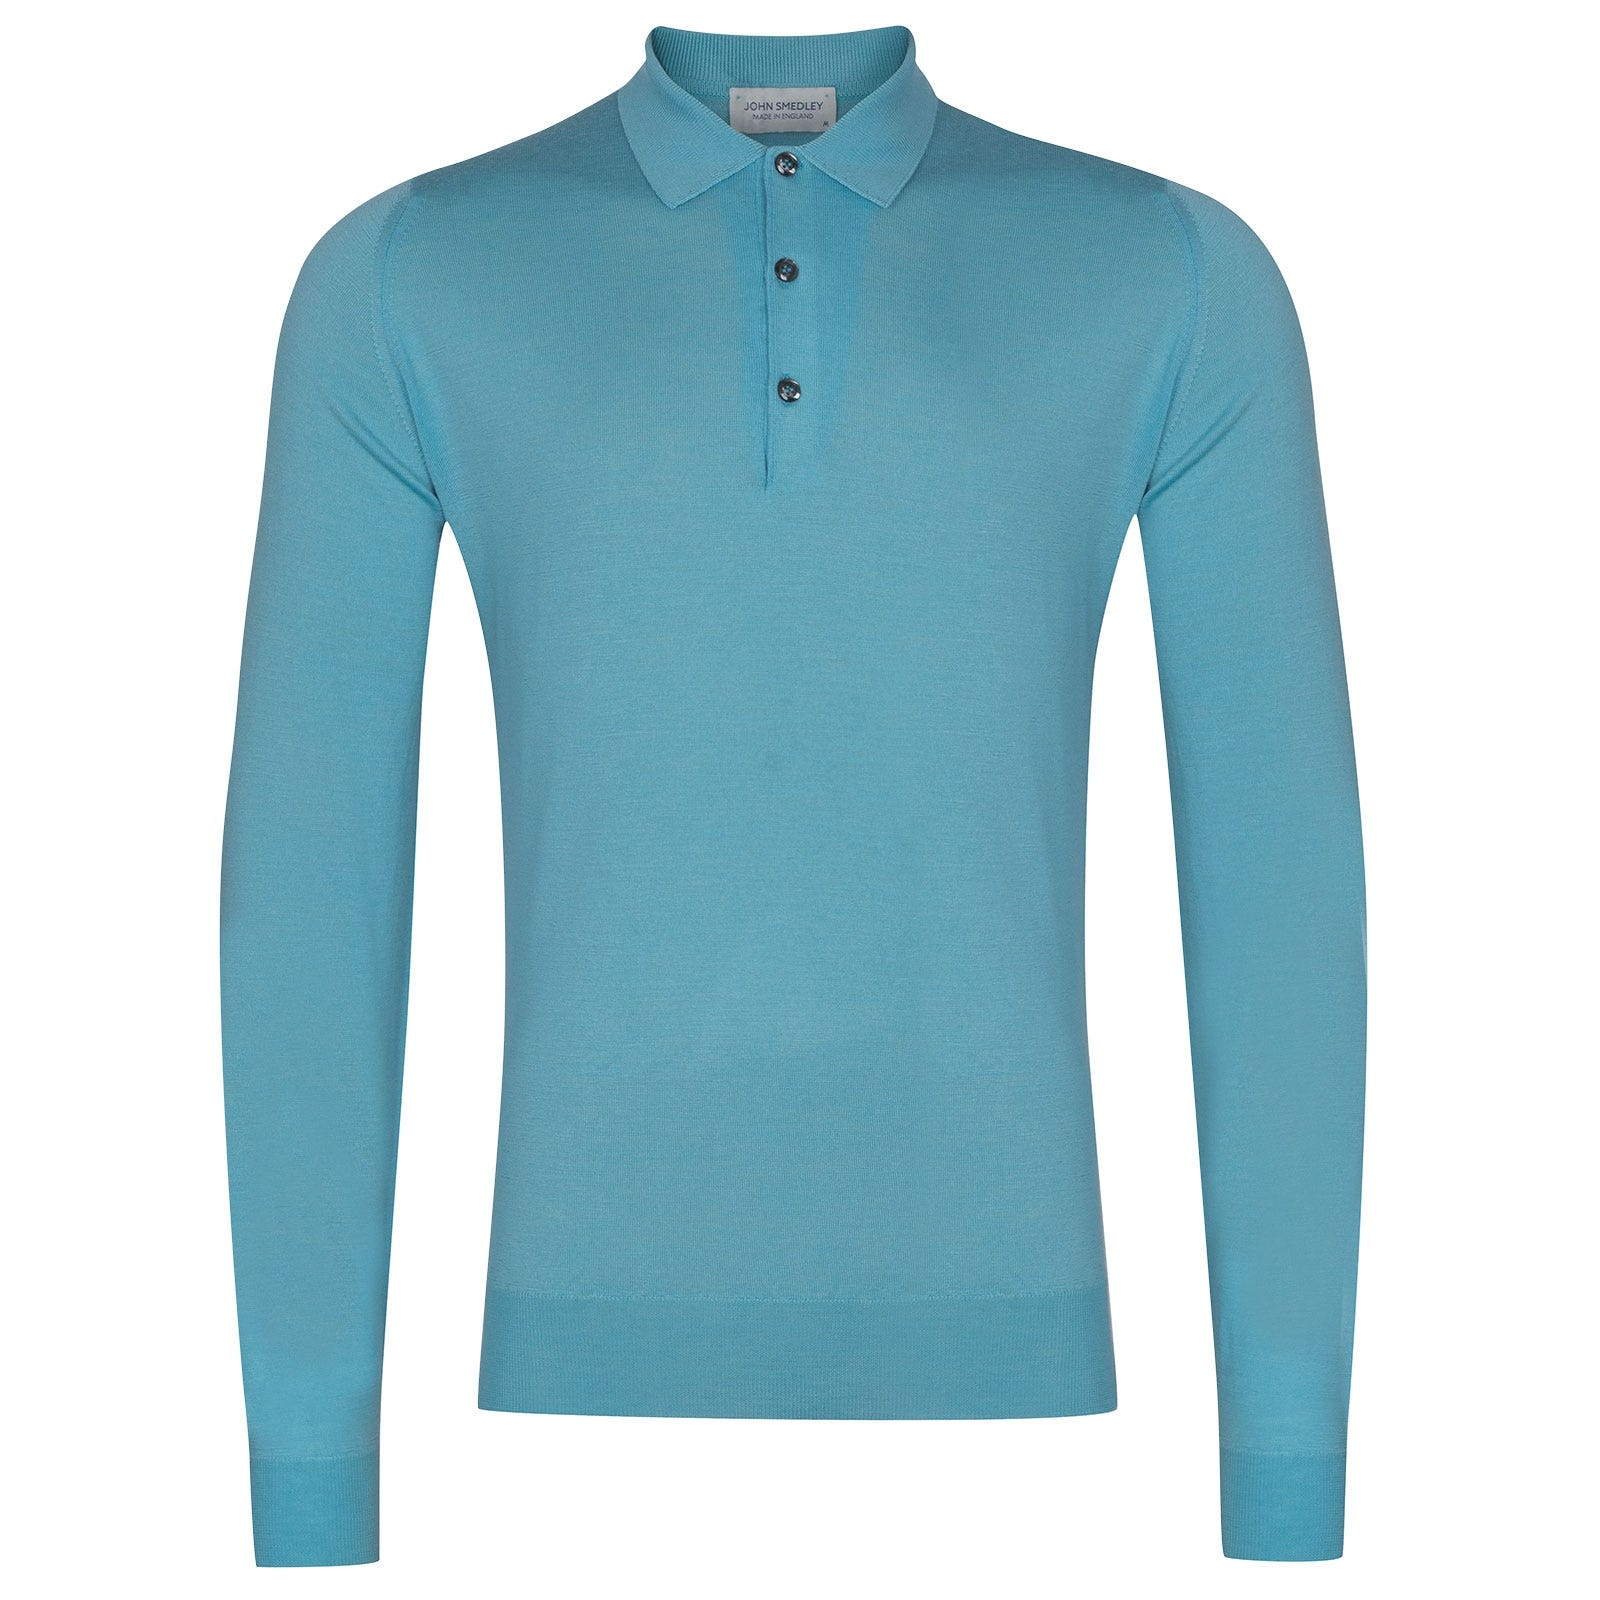 John Smedley Belper in Empyrean Blue Shirt-XLG